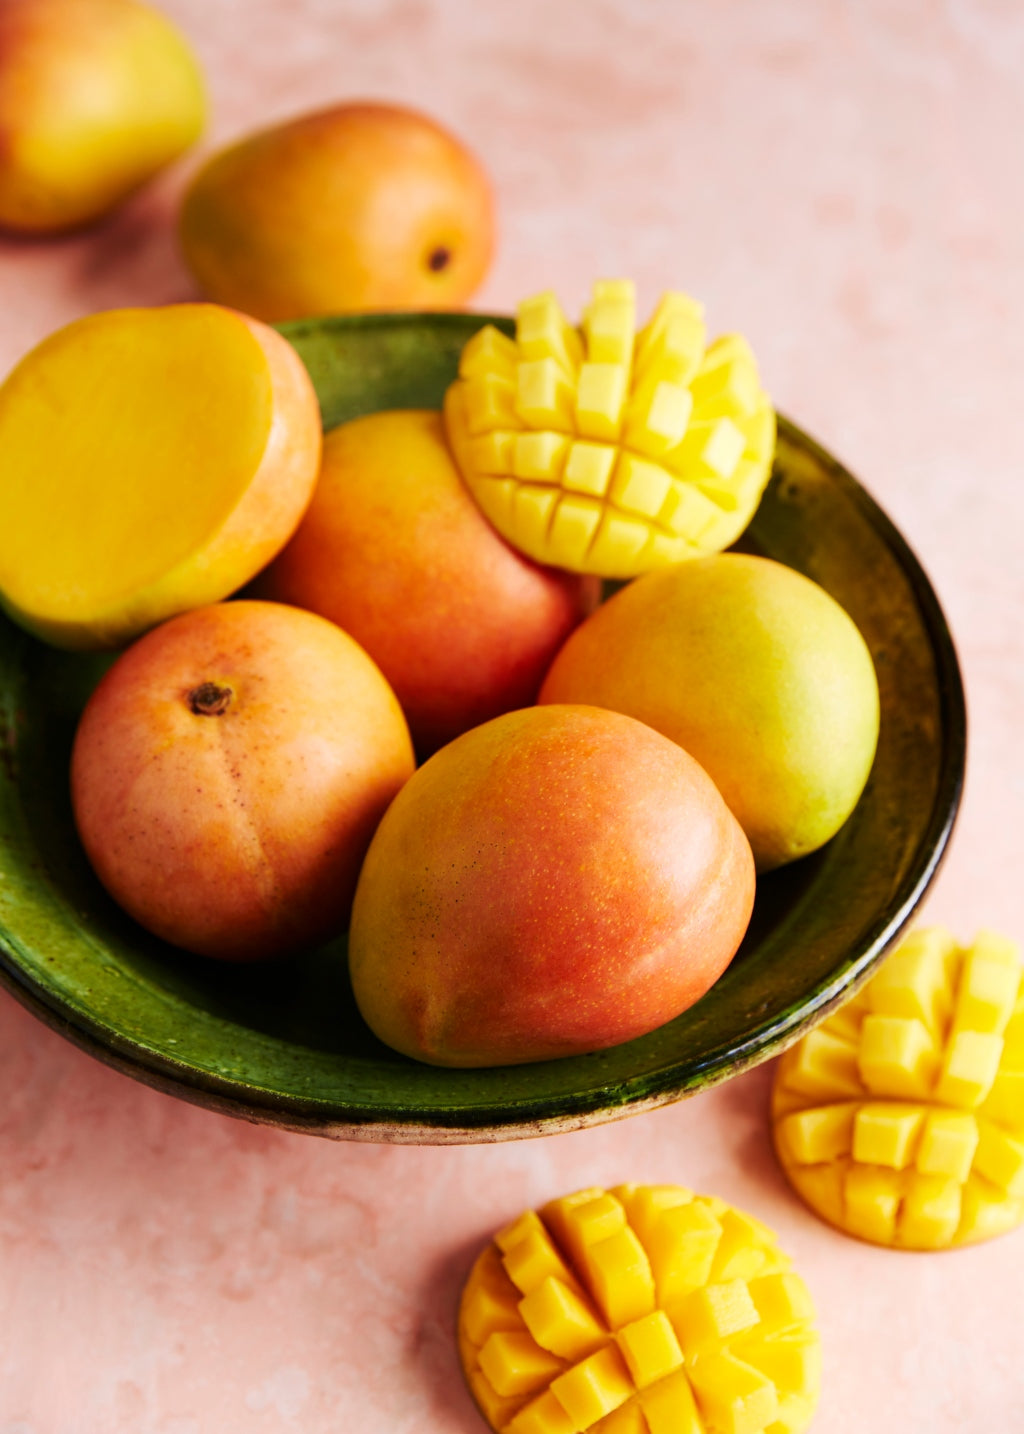 kensington pride mangoes pick of the week